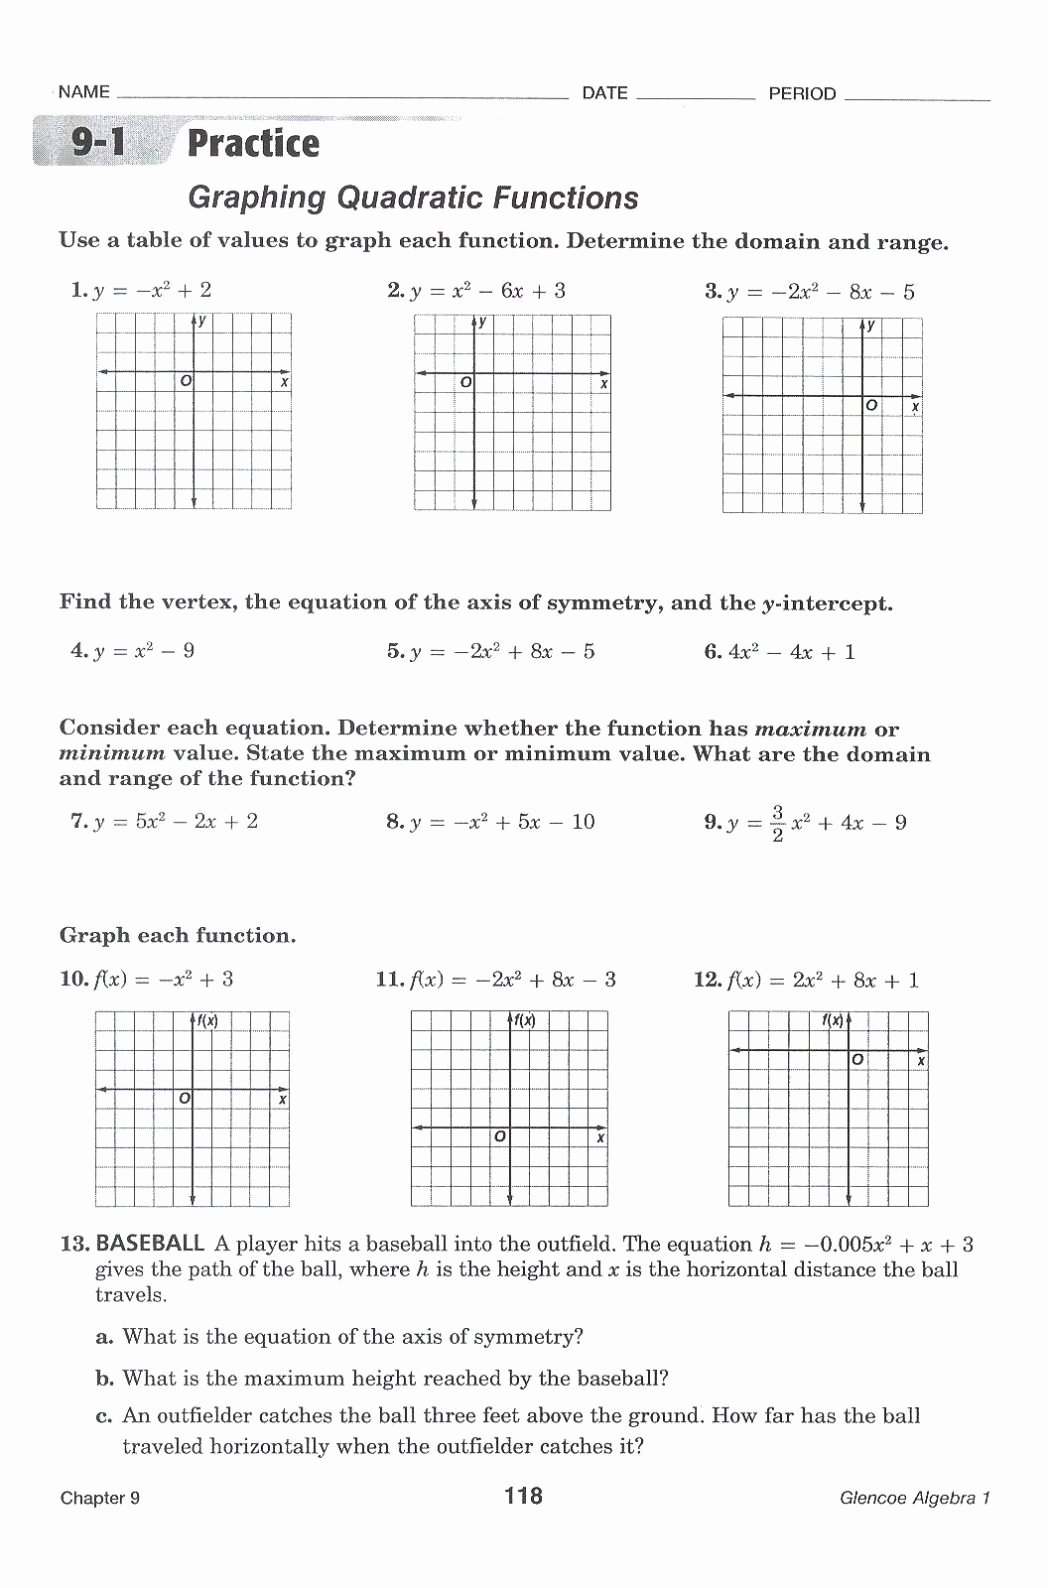 Graphing Quadratics Worksheet Answers Fresh Graphing Quadratic Functions Worksheet Answers the Best